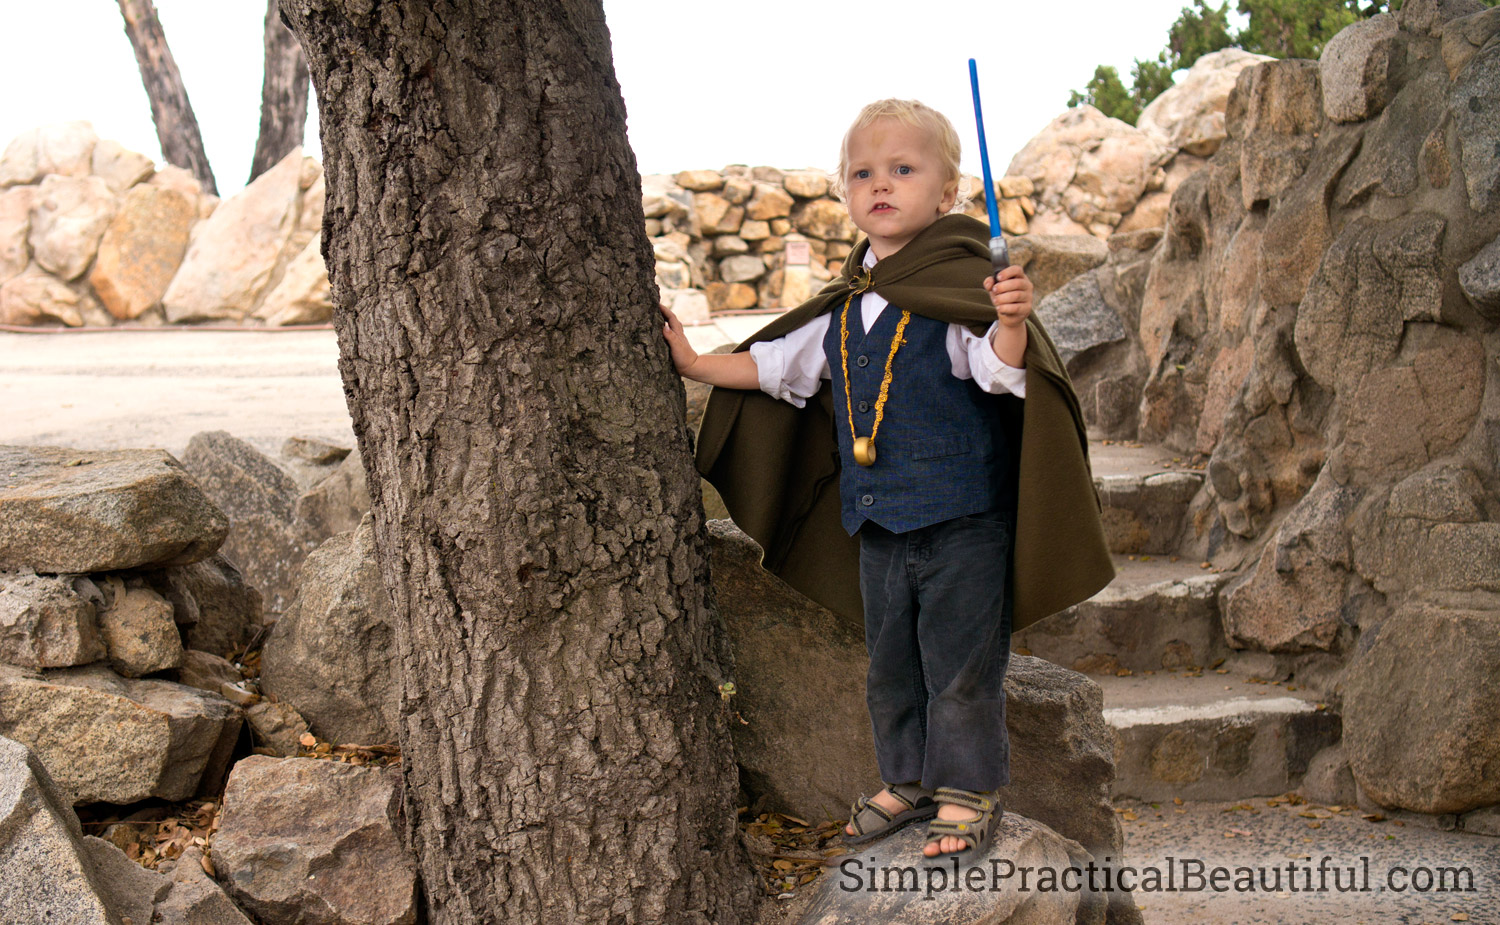 A Frodo costume for a toddler, including a glowing sword, a cloak, and the one ring